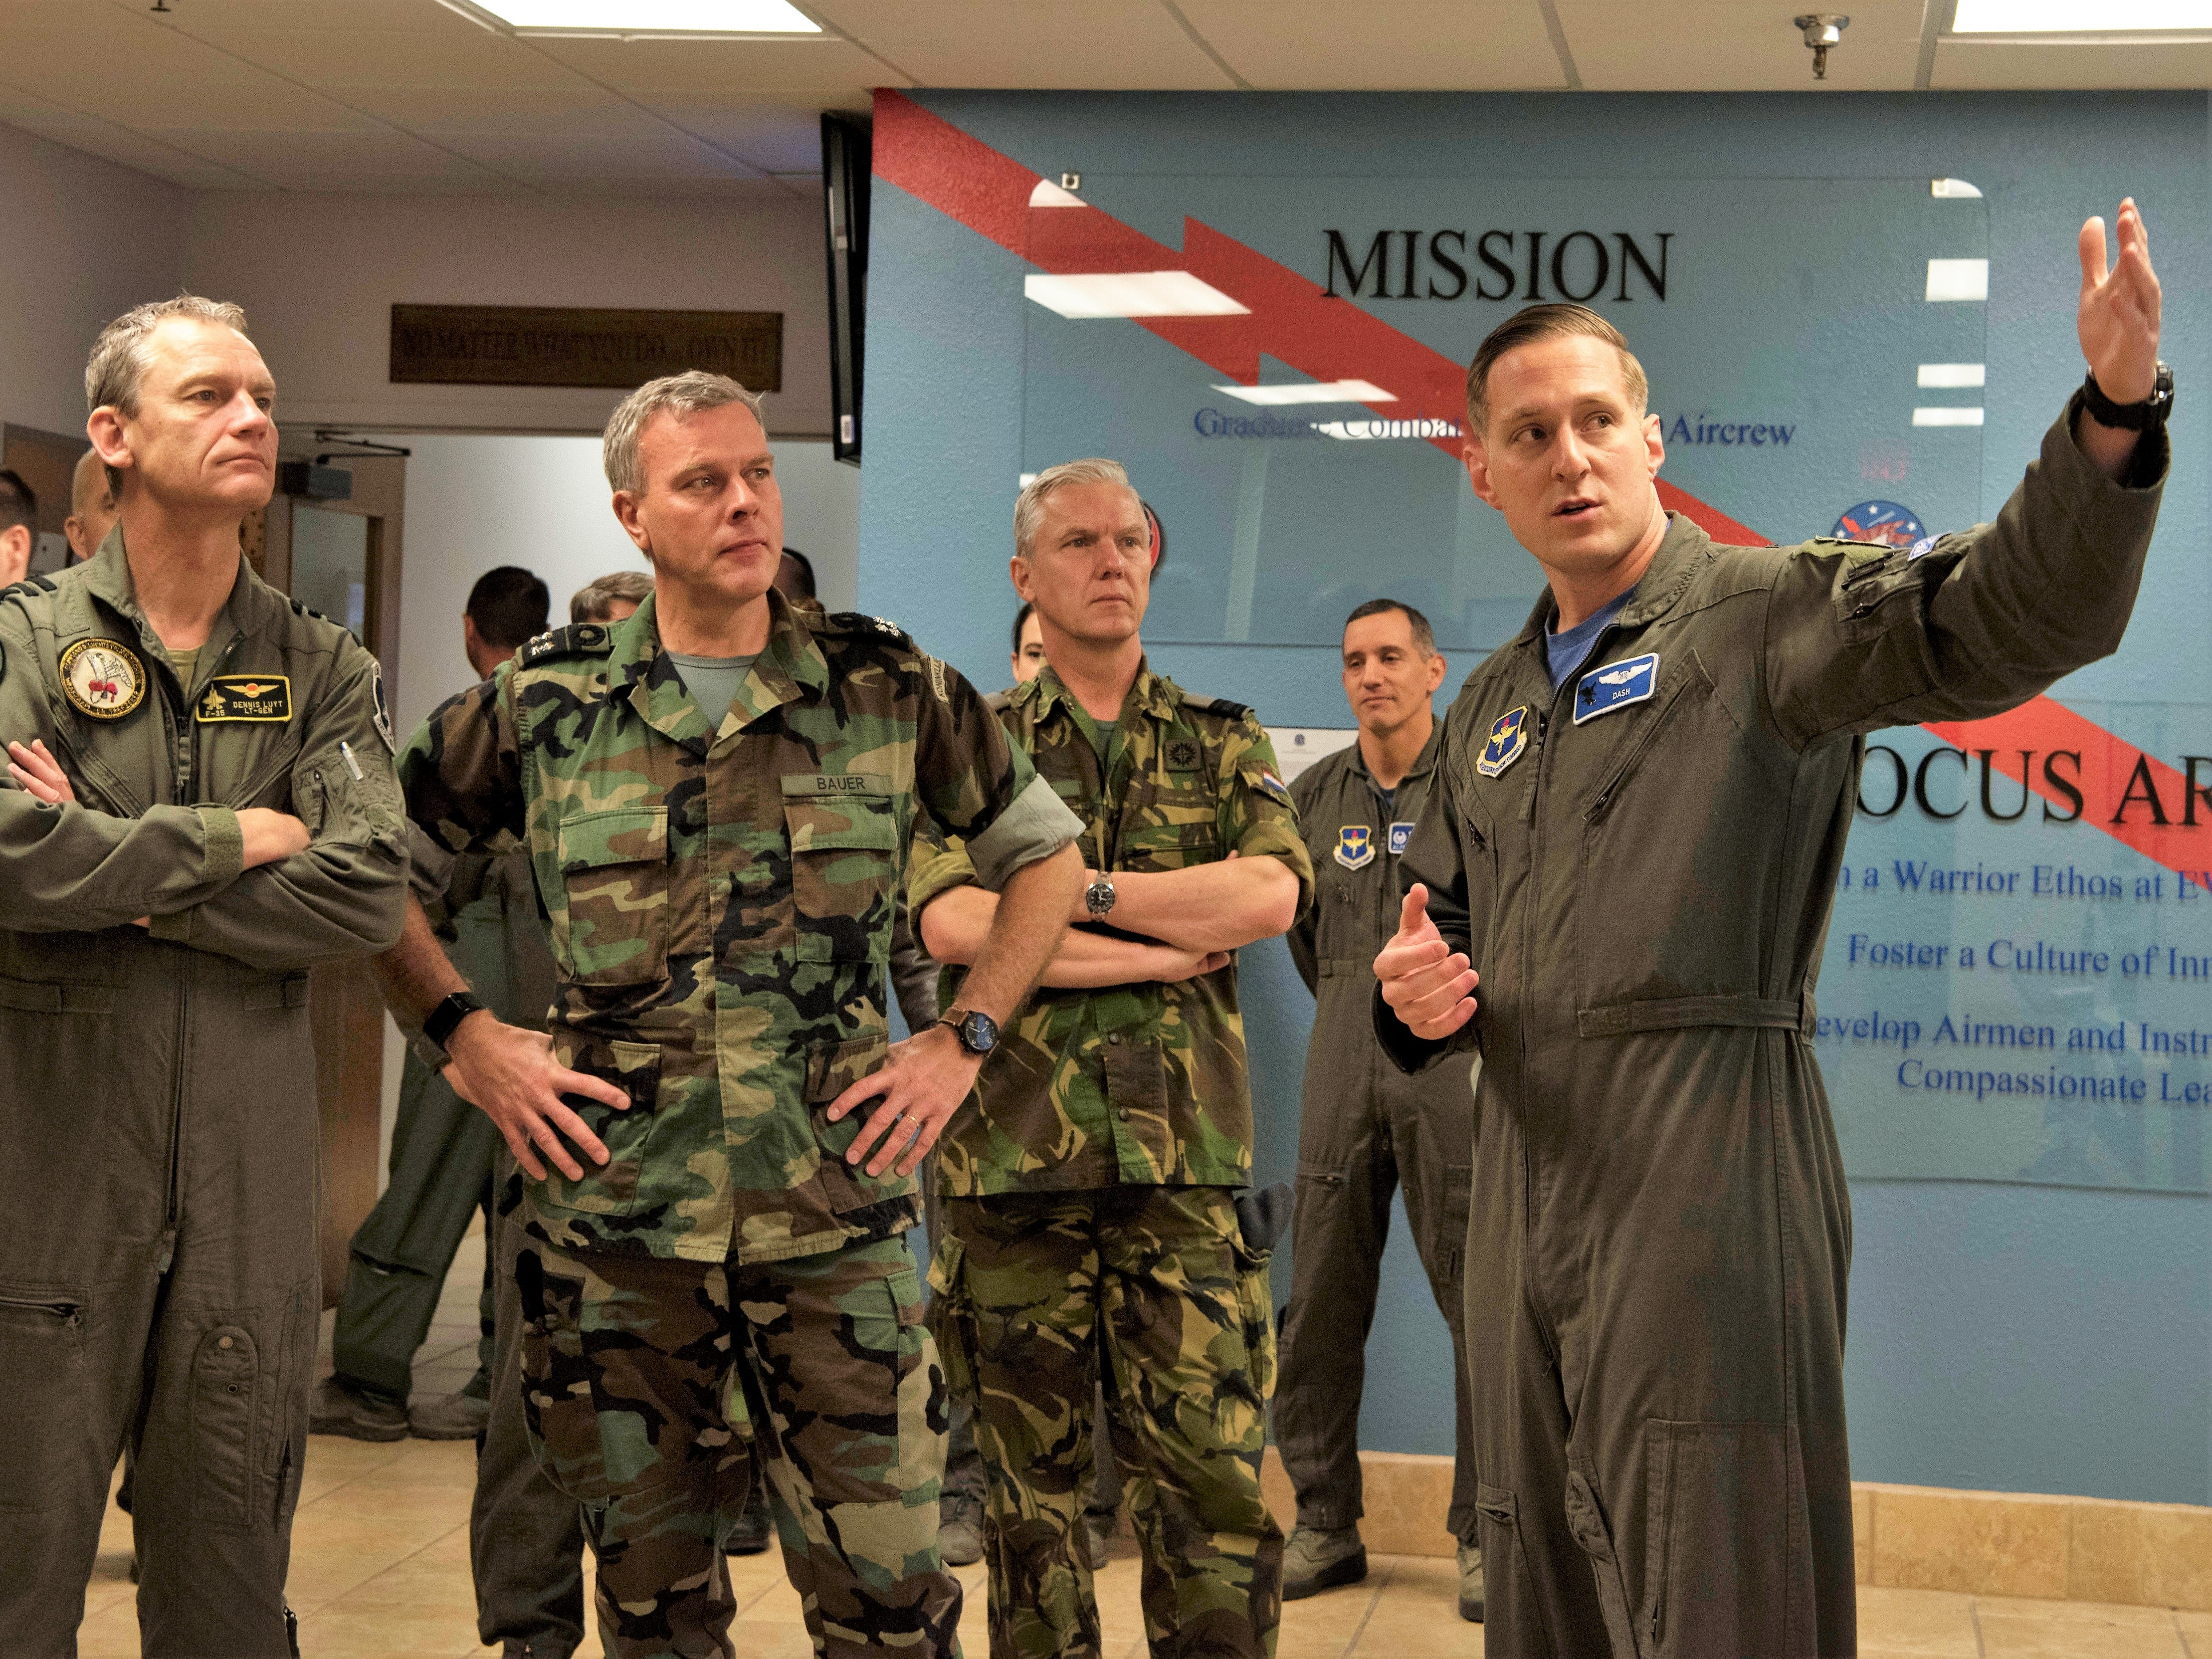 Capt. David Asche, 6th Attack Squadron flight commander, shows live feed televisions to Admiral Rob Bauer, Netherlands Chief of Defense and Lt. Gen. Dennis Luyt, Royal Netherlands Air Force commander, Feb. 1, 2019, in the 6th Attack Squadron on Holloman Air Force Base, N.M. Netherlands defense and military officials visited Holloman to tour the facilities where their MQ-9 Reaper pilots and sensor operators are being trained.